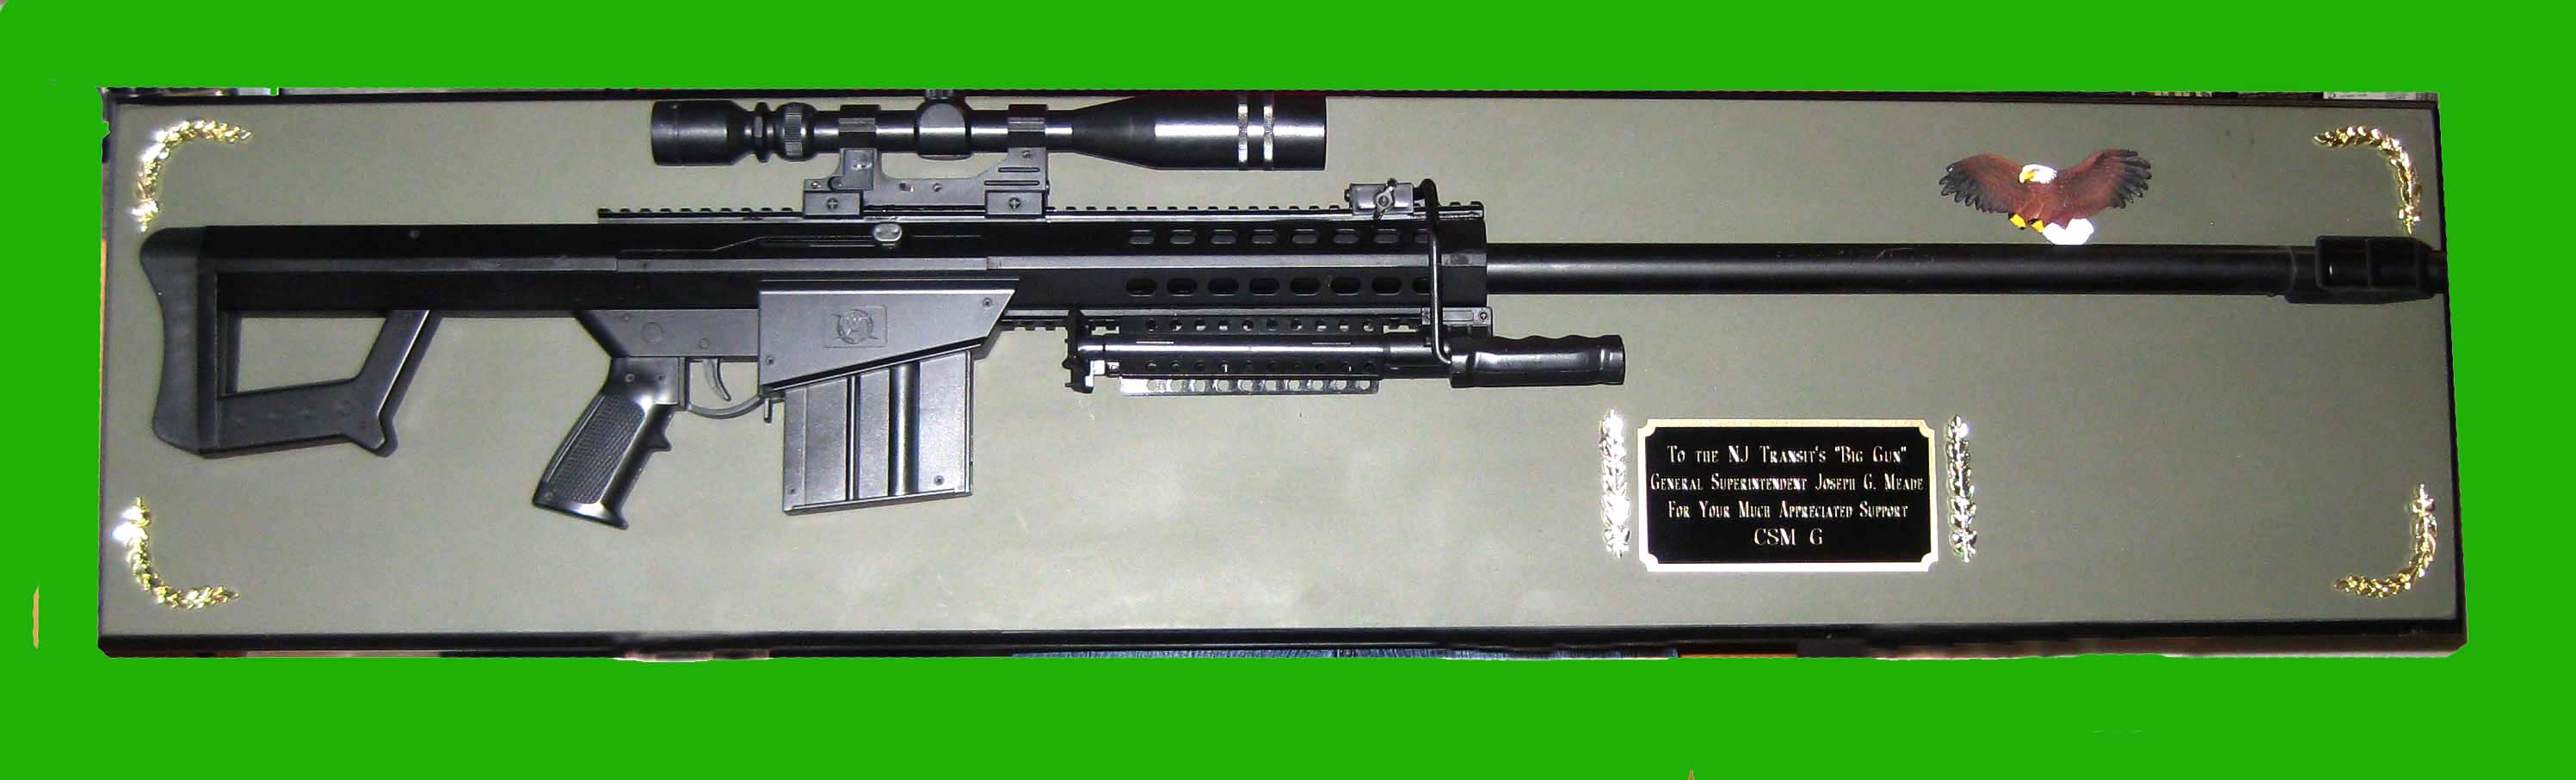 Award M281A1 Barrett sniper rifle full size - Click Image to Close